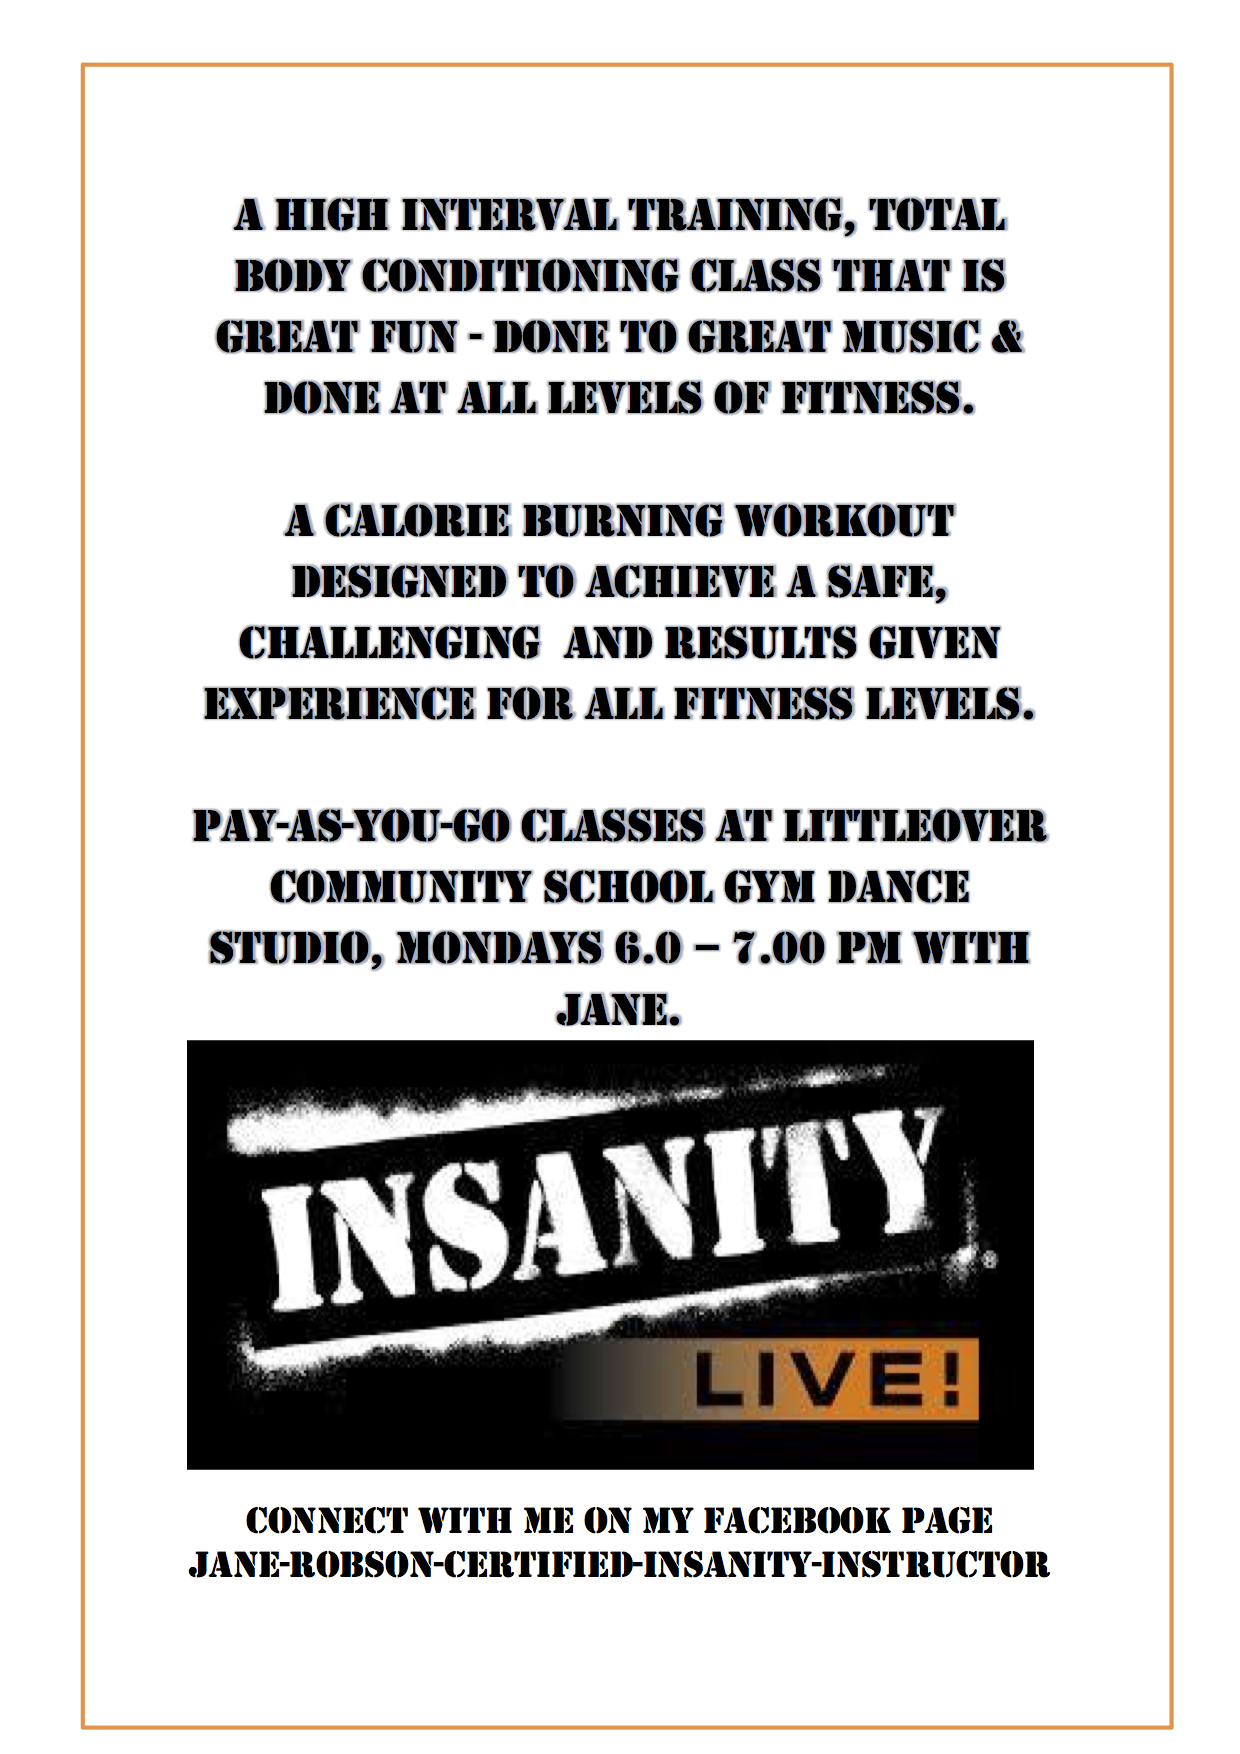 Jane Robson Certified Insanity Live Instructor